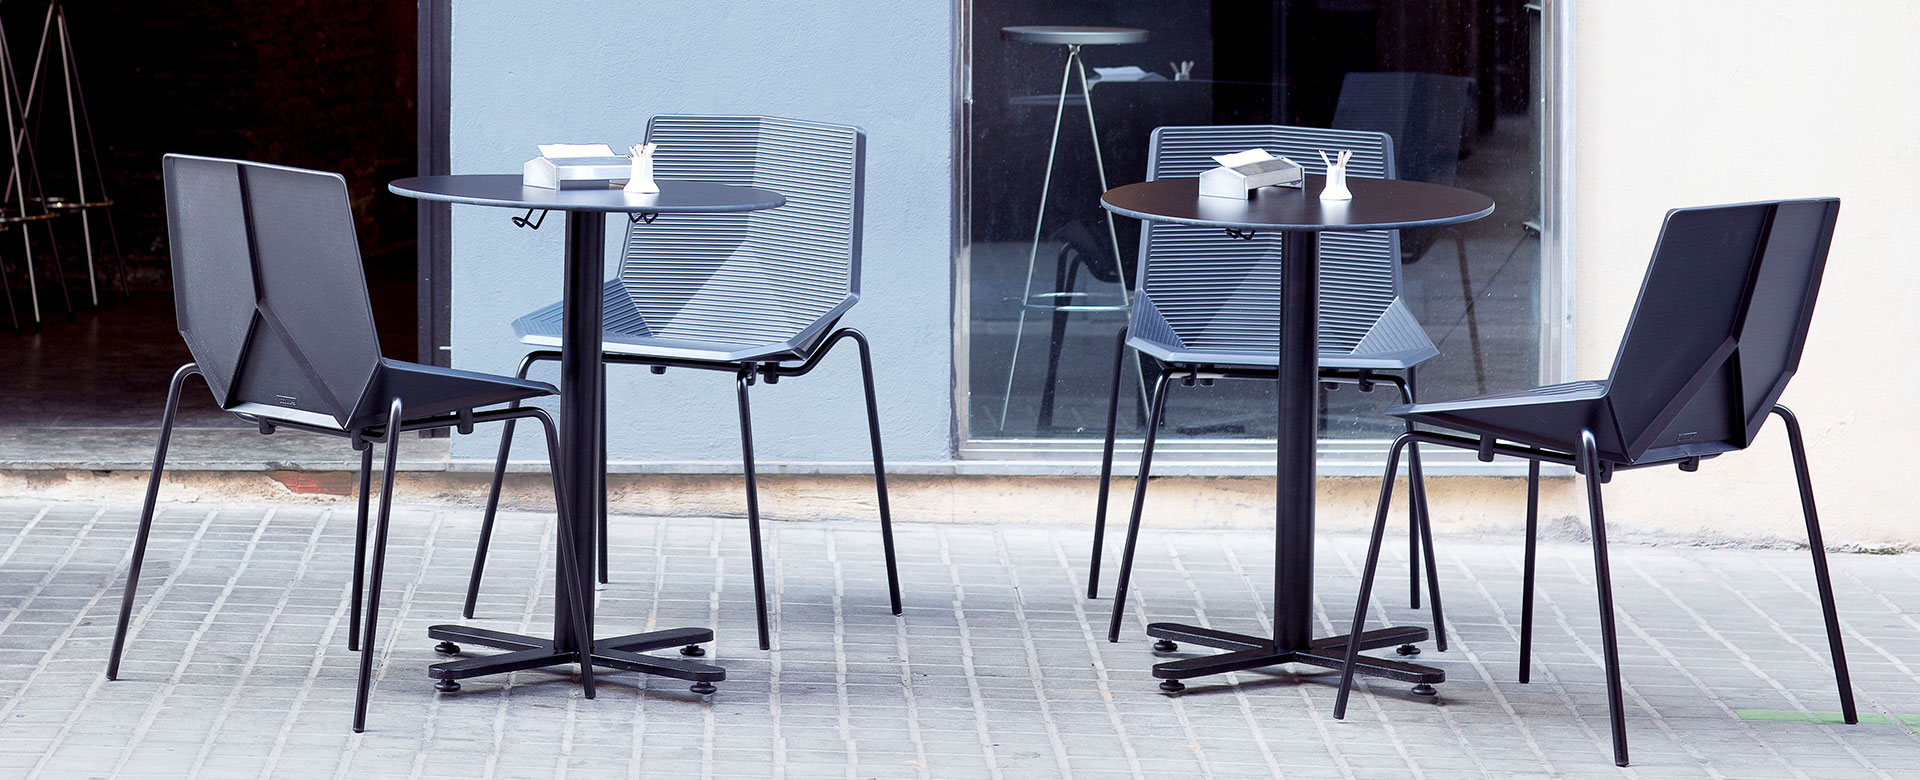 OXI BISTROT Outdoor Tables